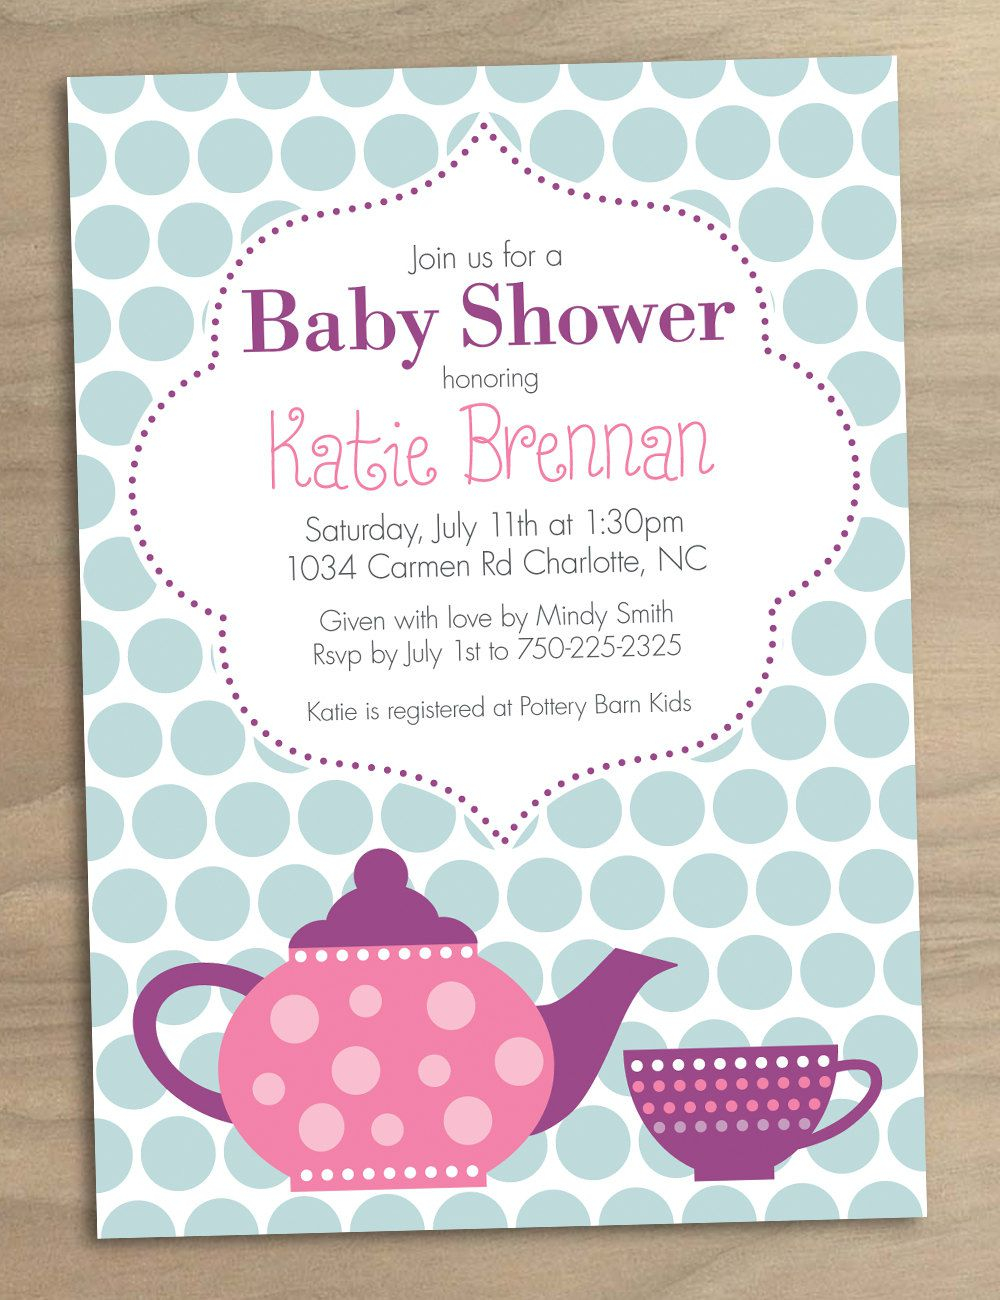 Bridal Shower Tea Party Invitations Bridal Shower Tea Party throughout dimensions 1000 X 1300